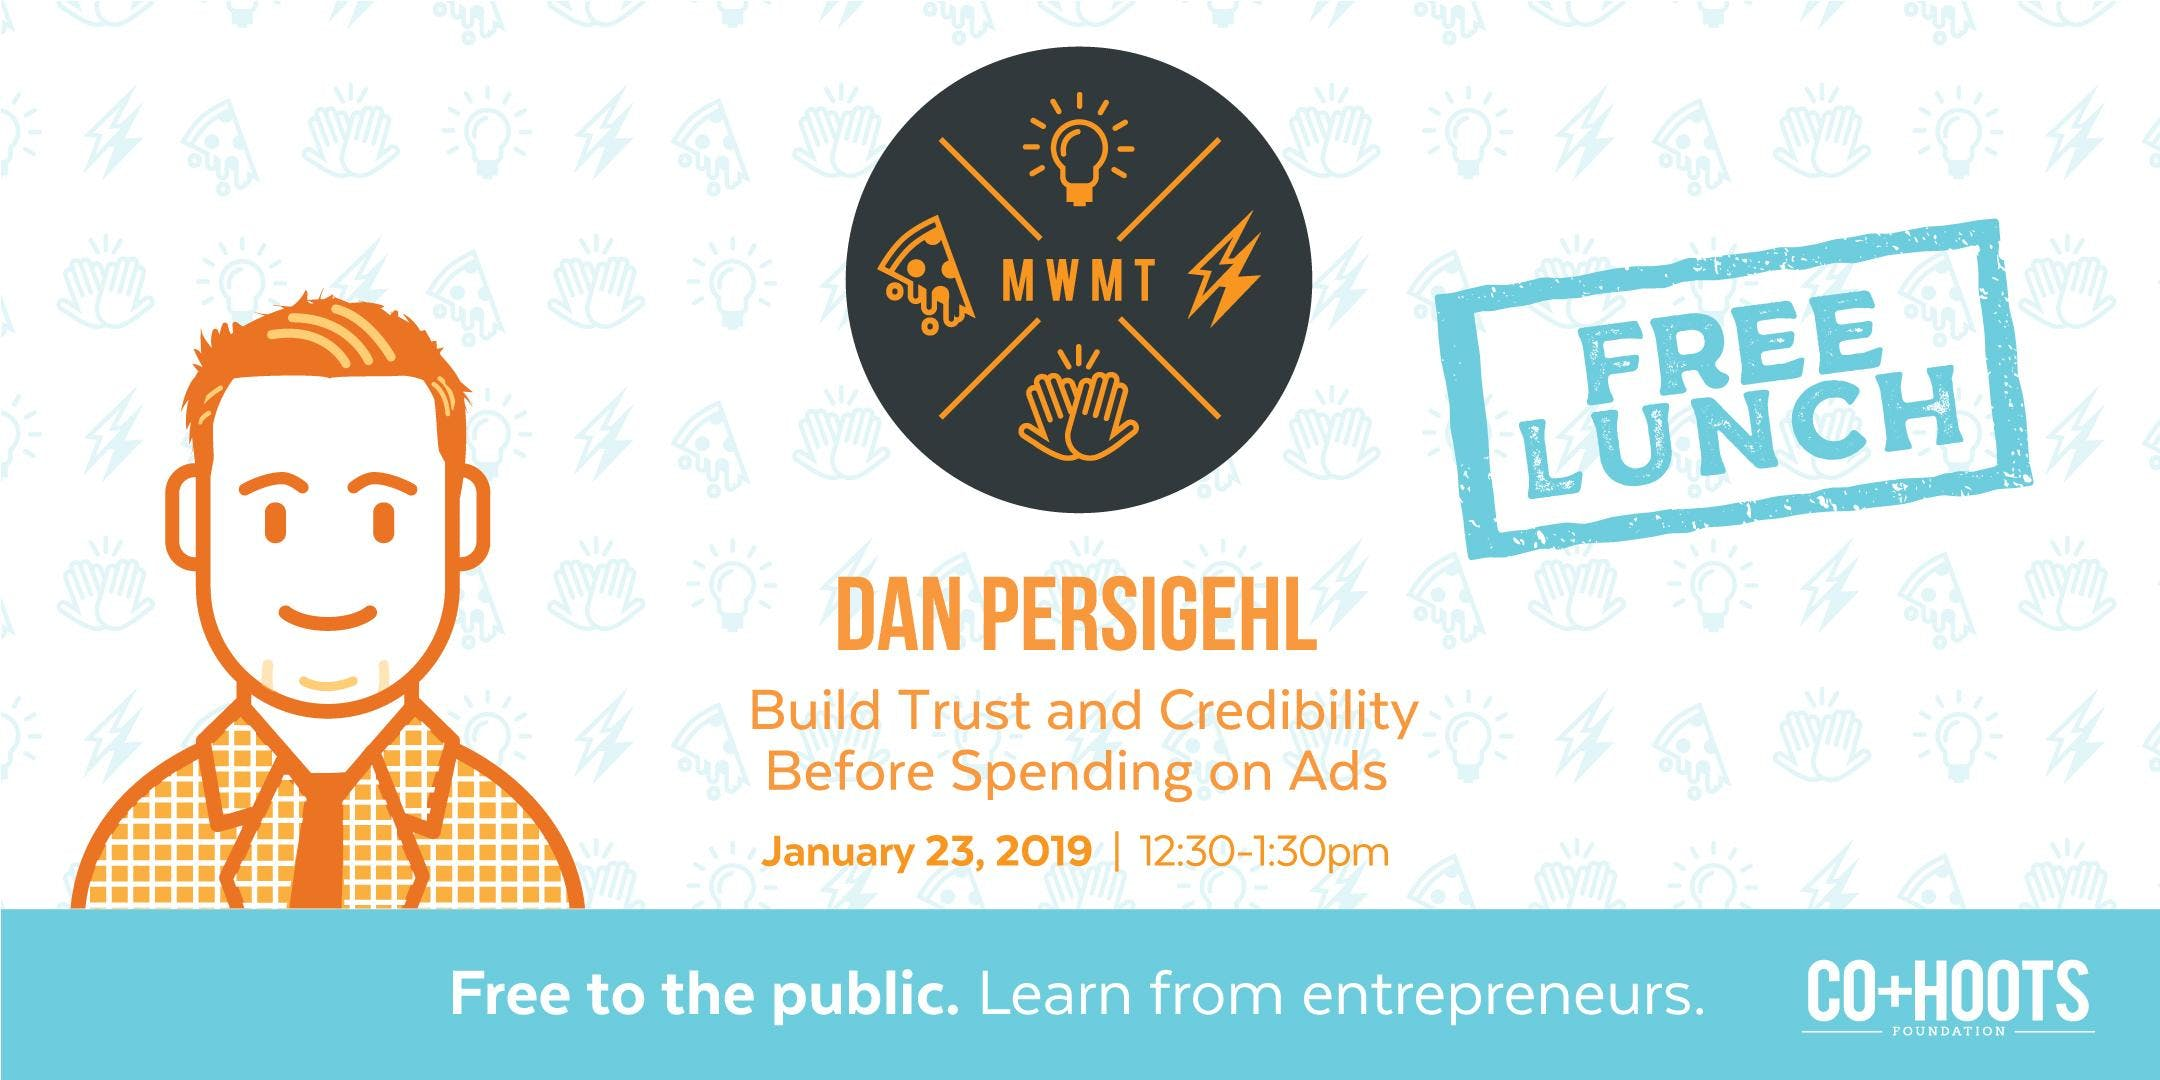 Build Trust and Credibility Before Spending on Ads (FREE LUNCH)